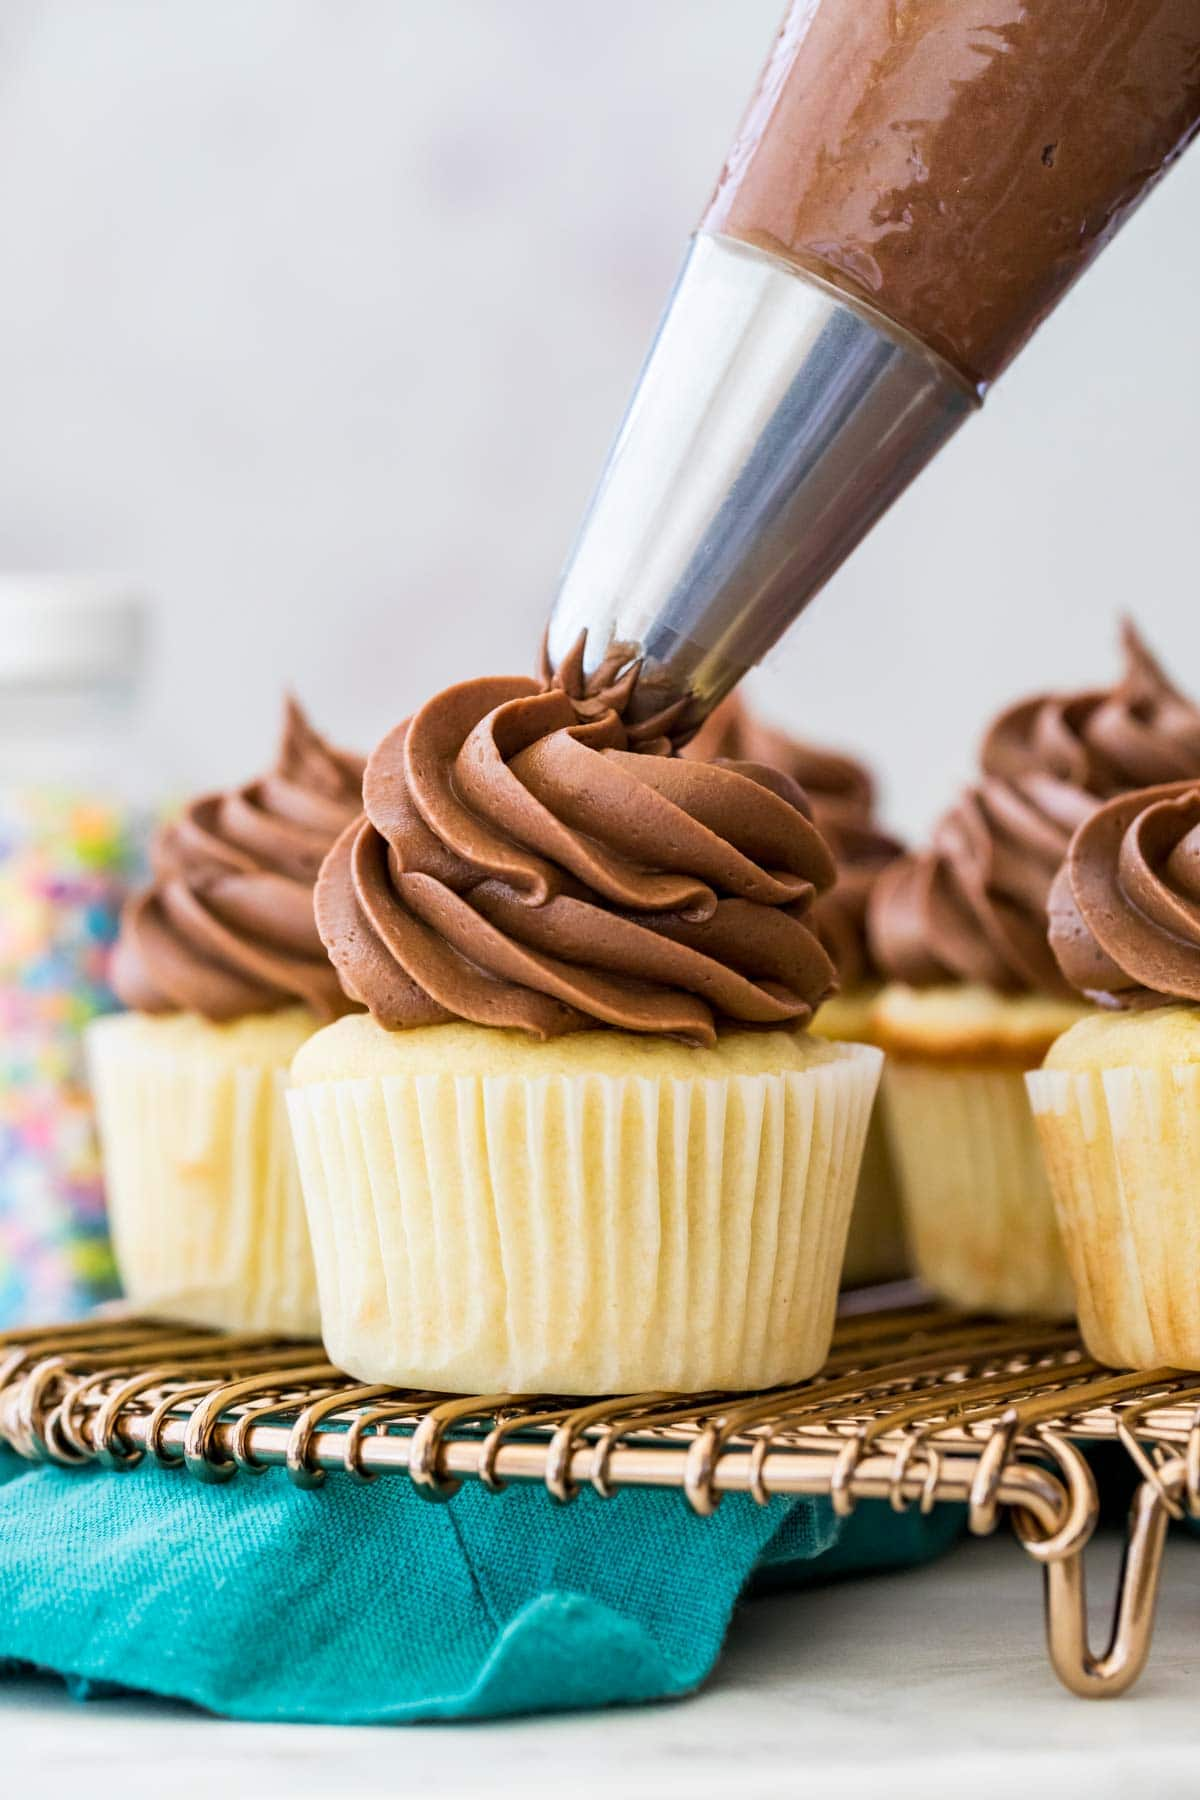 Piping chocolate frosting on a cupcake.